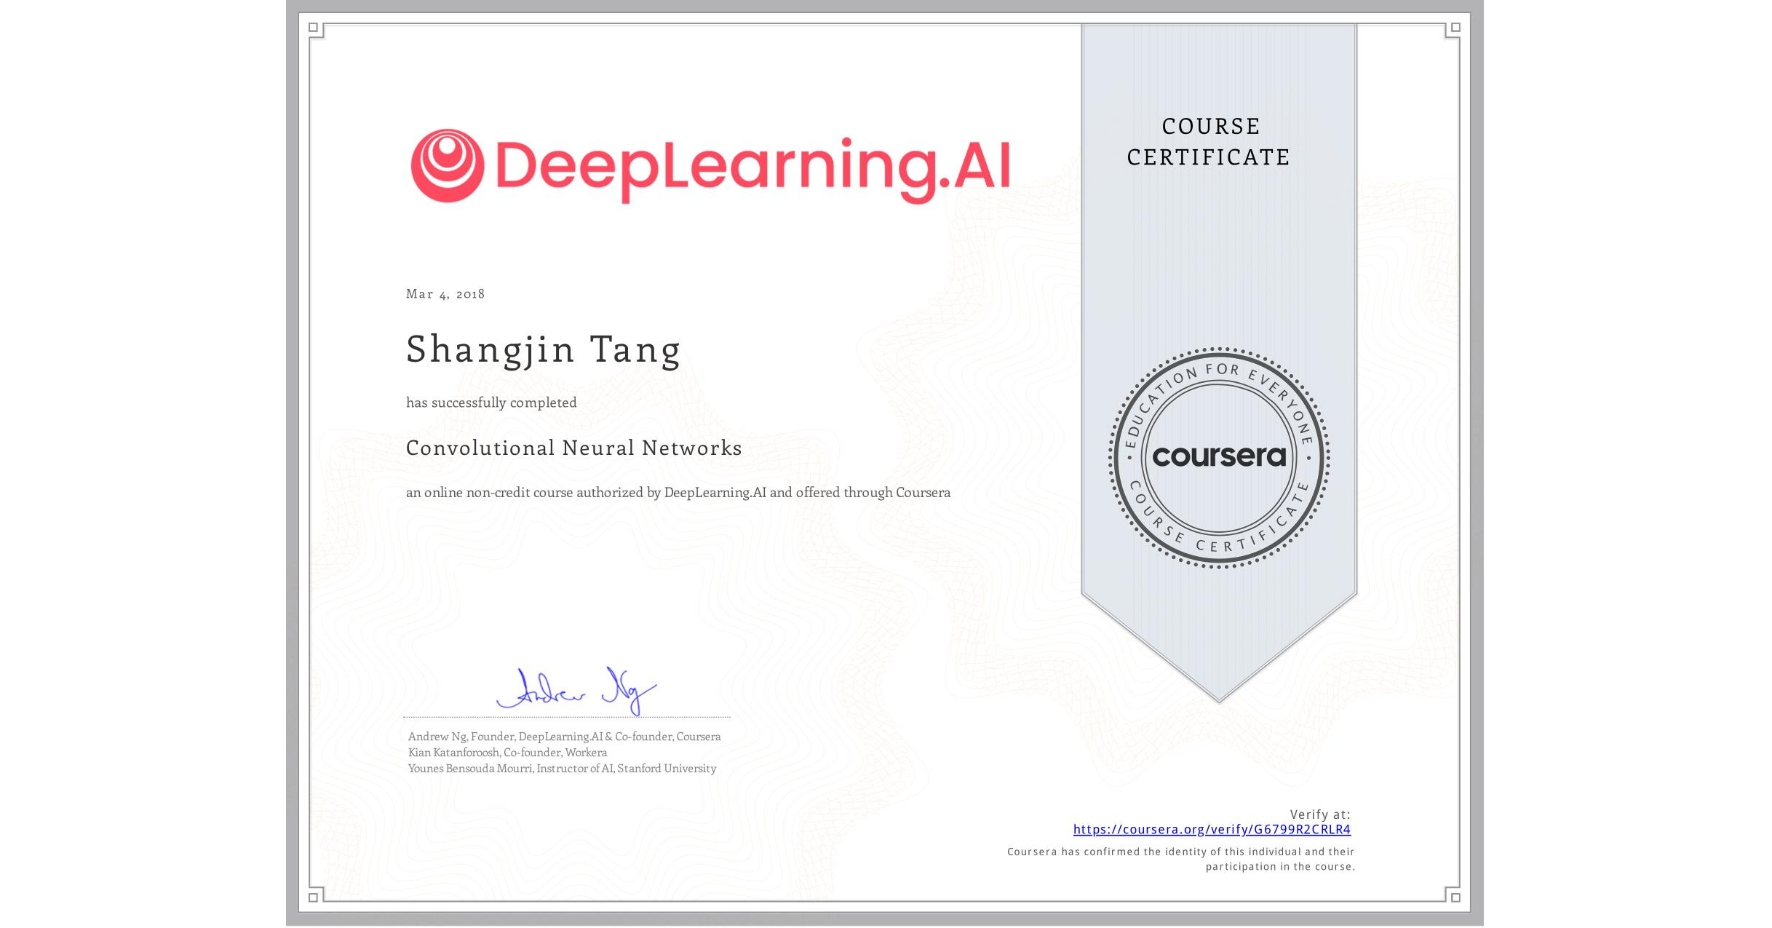 View certificate for Shangjin Tang, Convolutional Neural Networks, an online non-credit course authorized by DeepLearning.AI and offered through Coursera